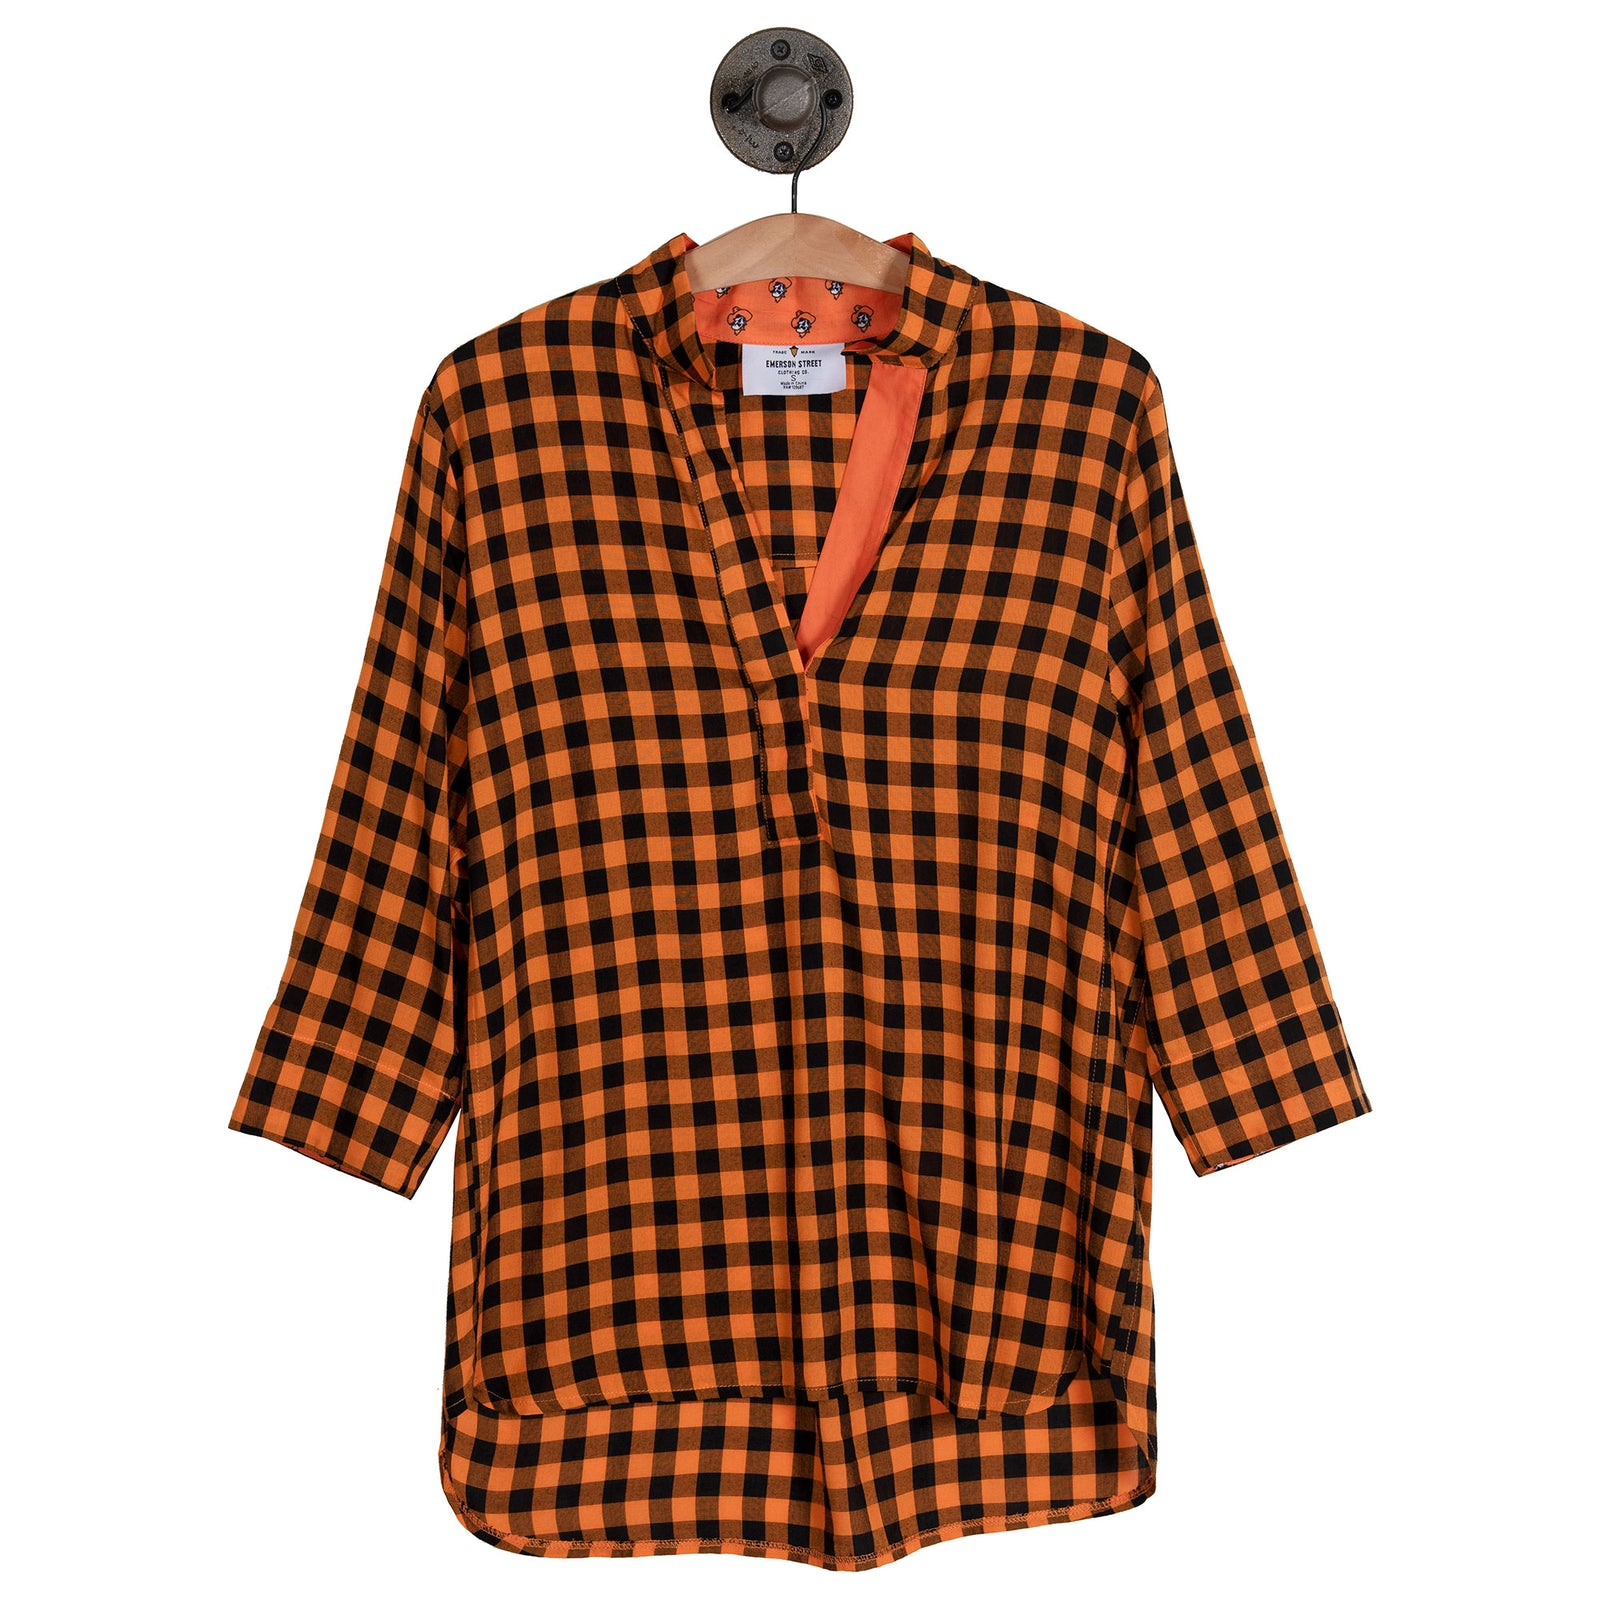 OSU KEELEY GINGHAM LONG TUNIC - OSUKGLT